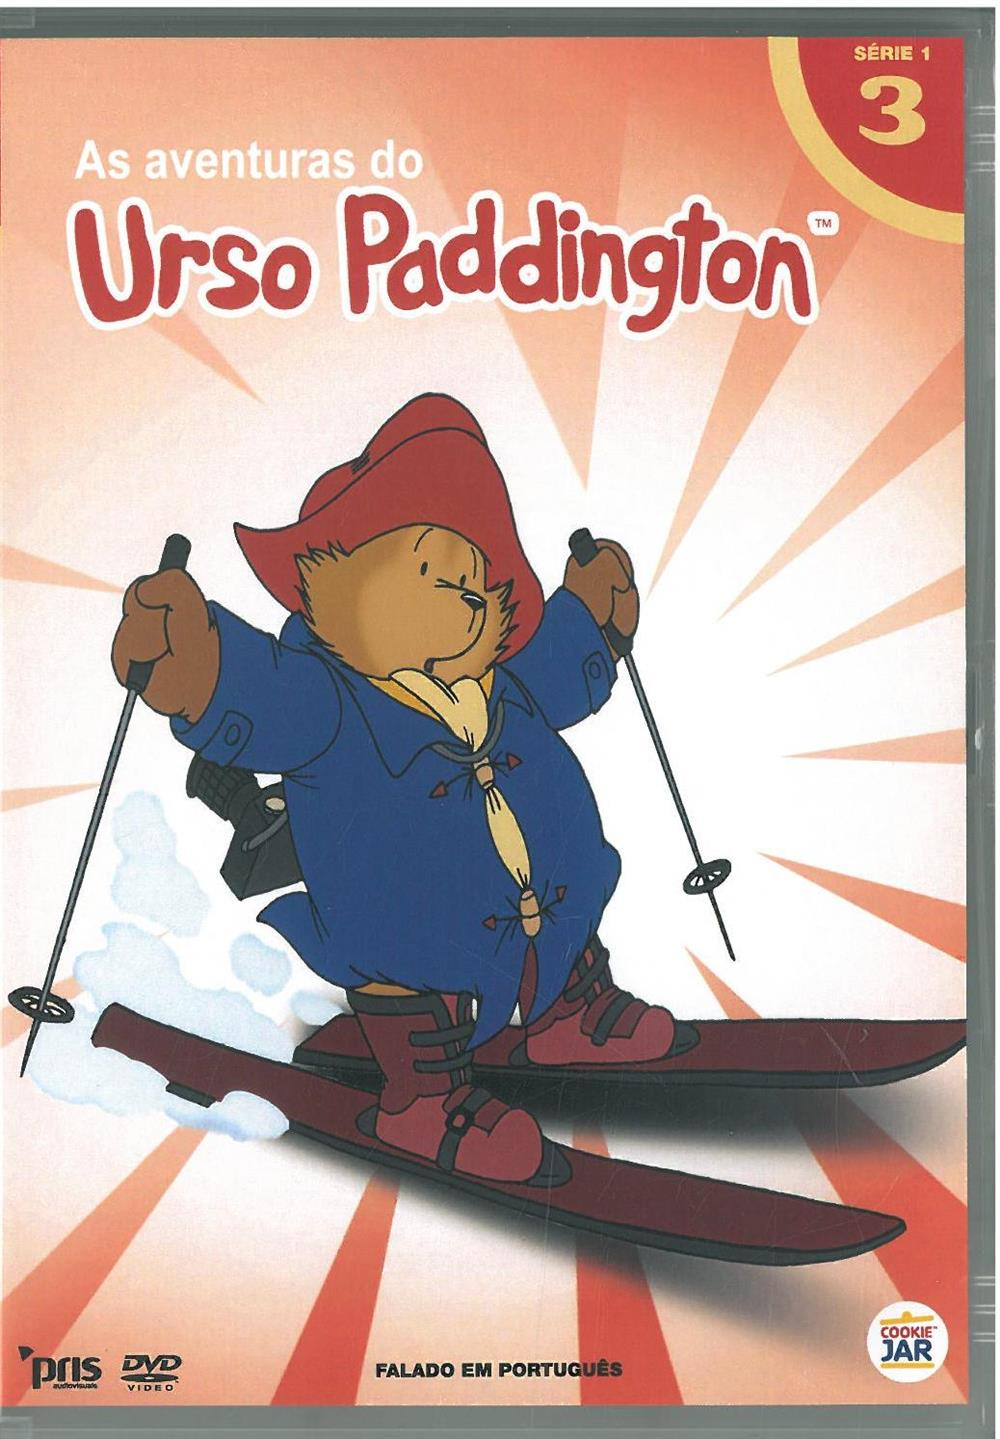 As aventuras do urso Paddington_3.jpg